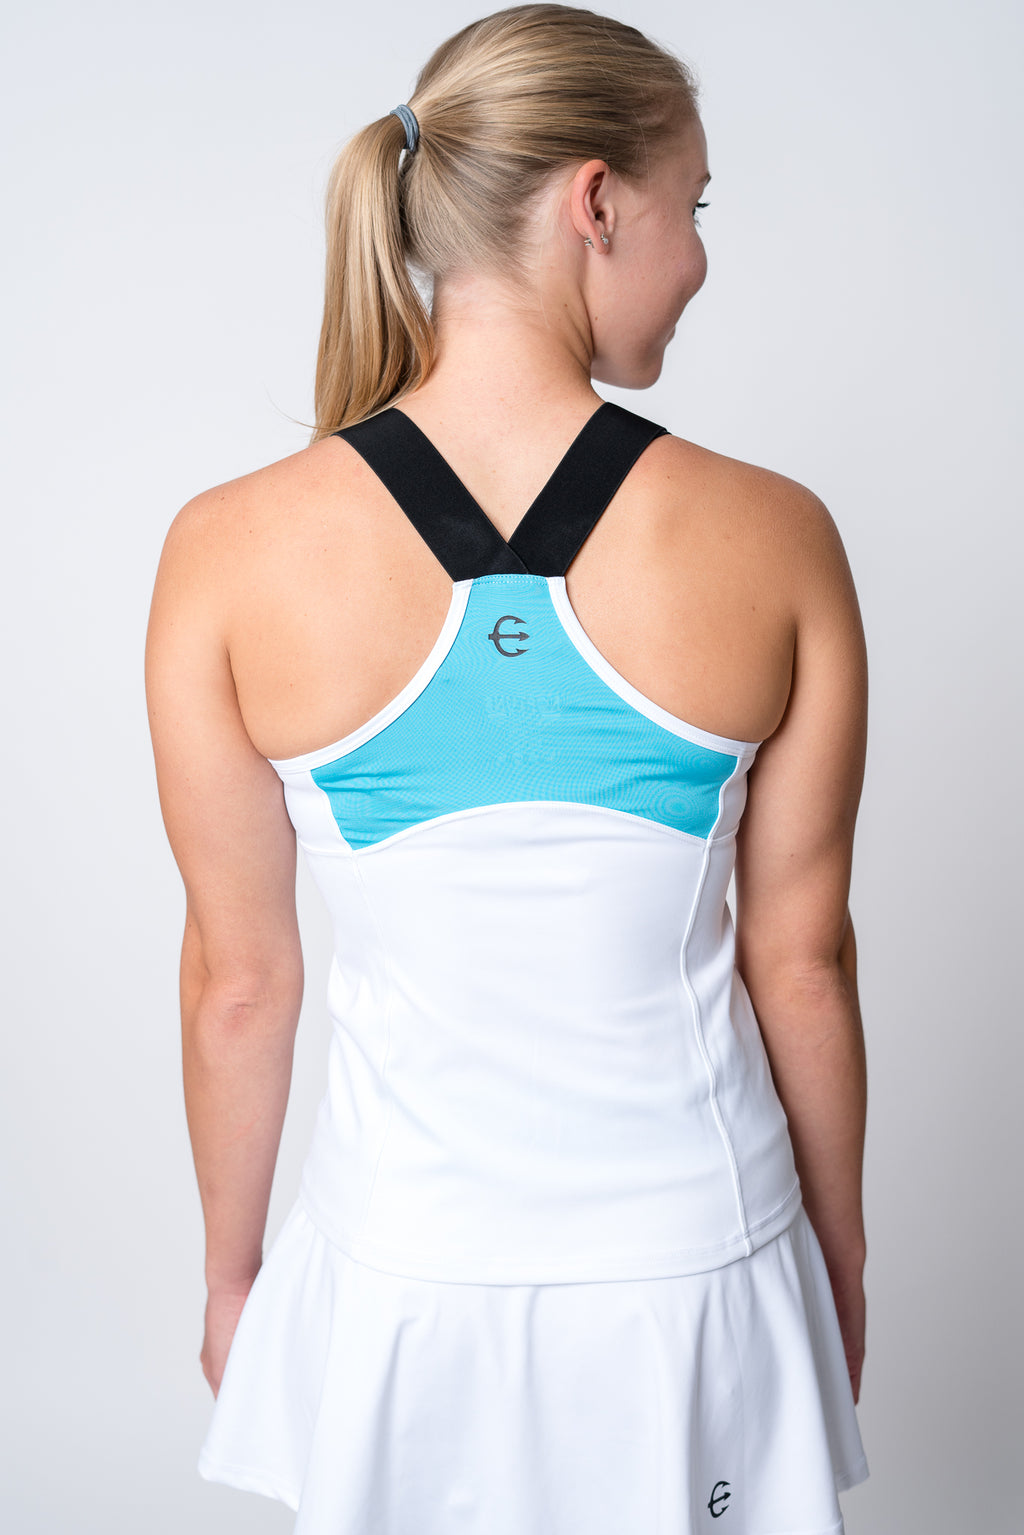 Neptune athletics white tank top with light blue color block on back with black trident and black elastic straps